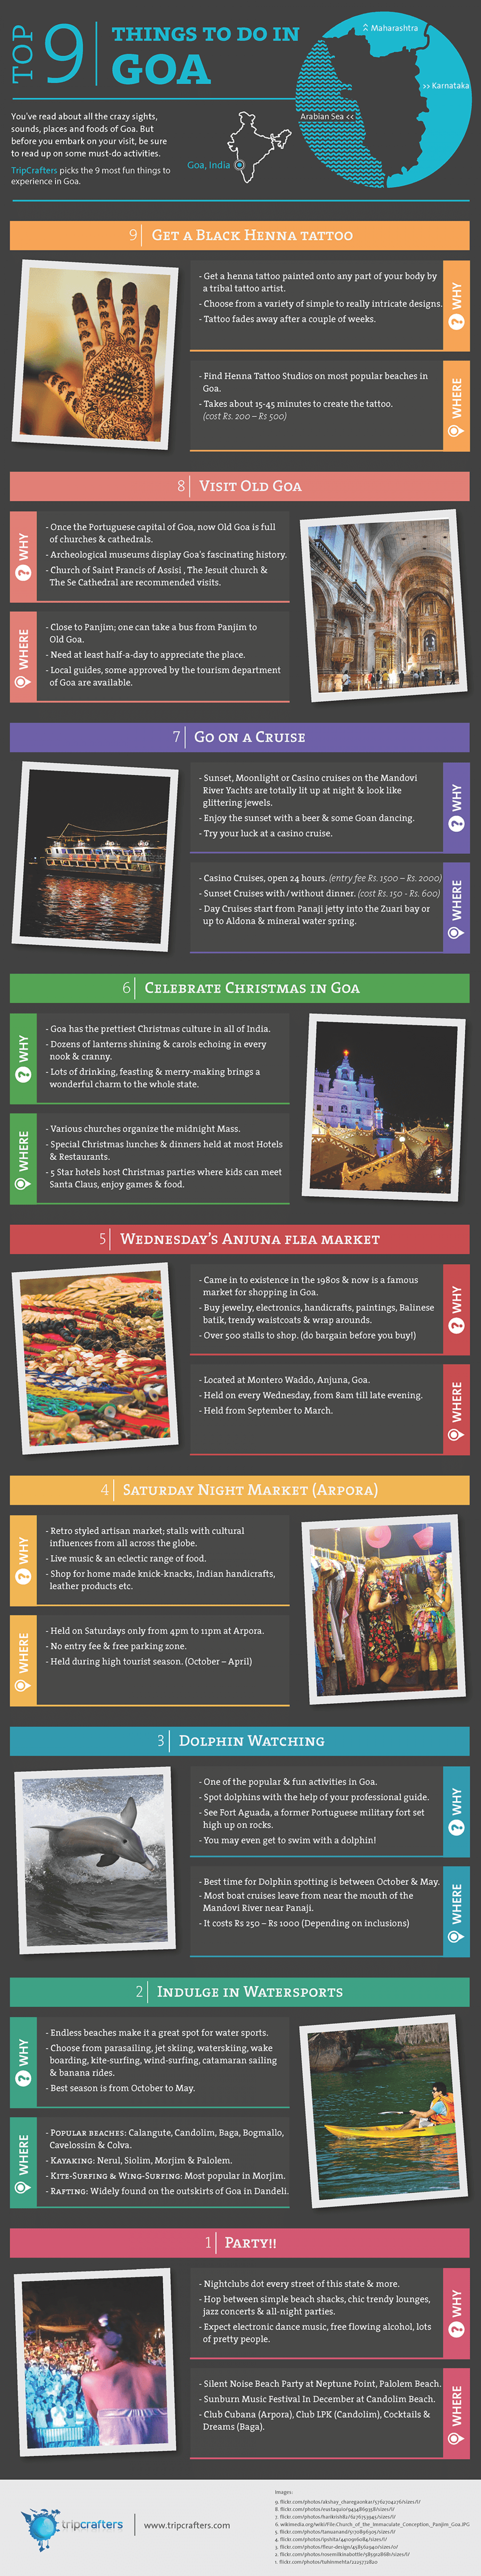 Things to do in Goa Infographic